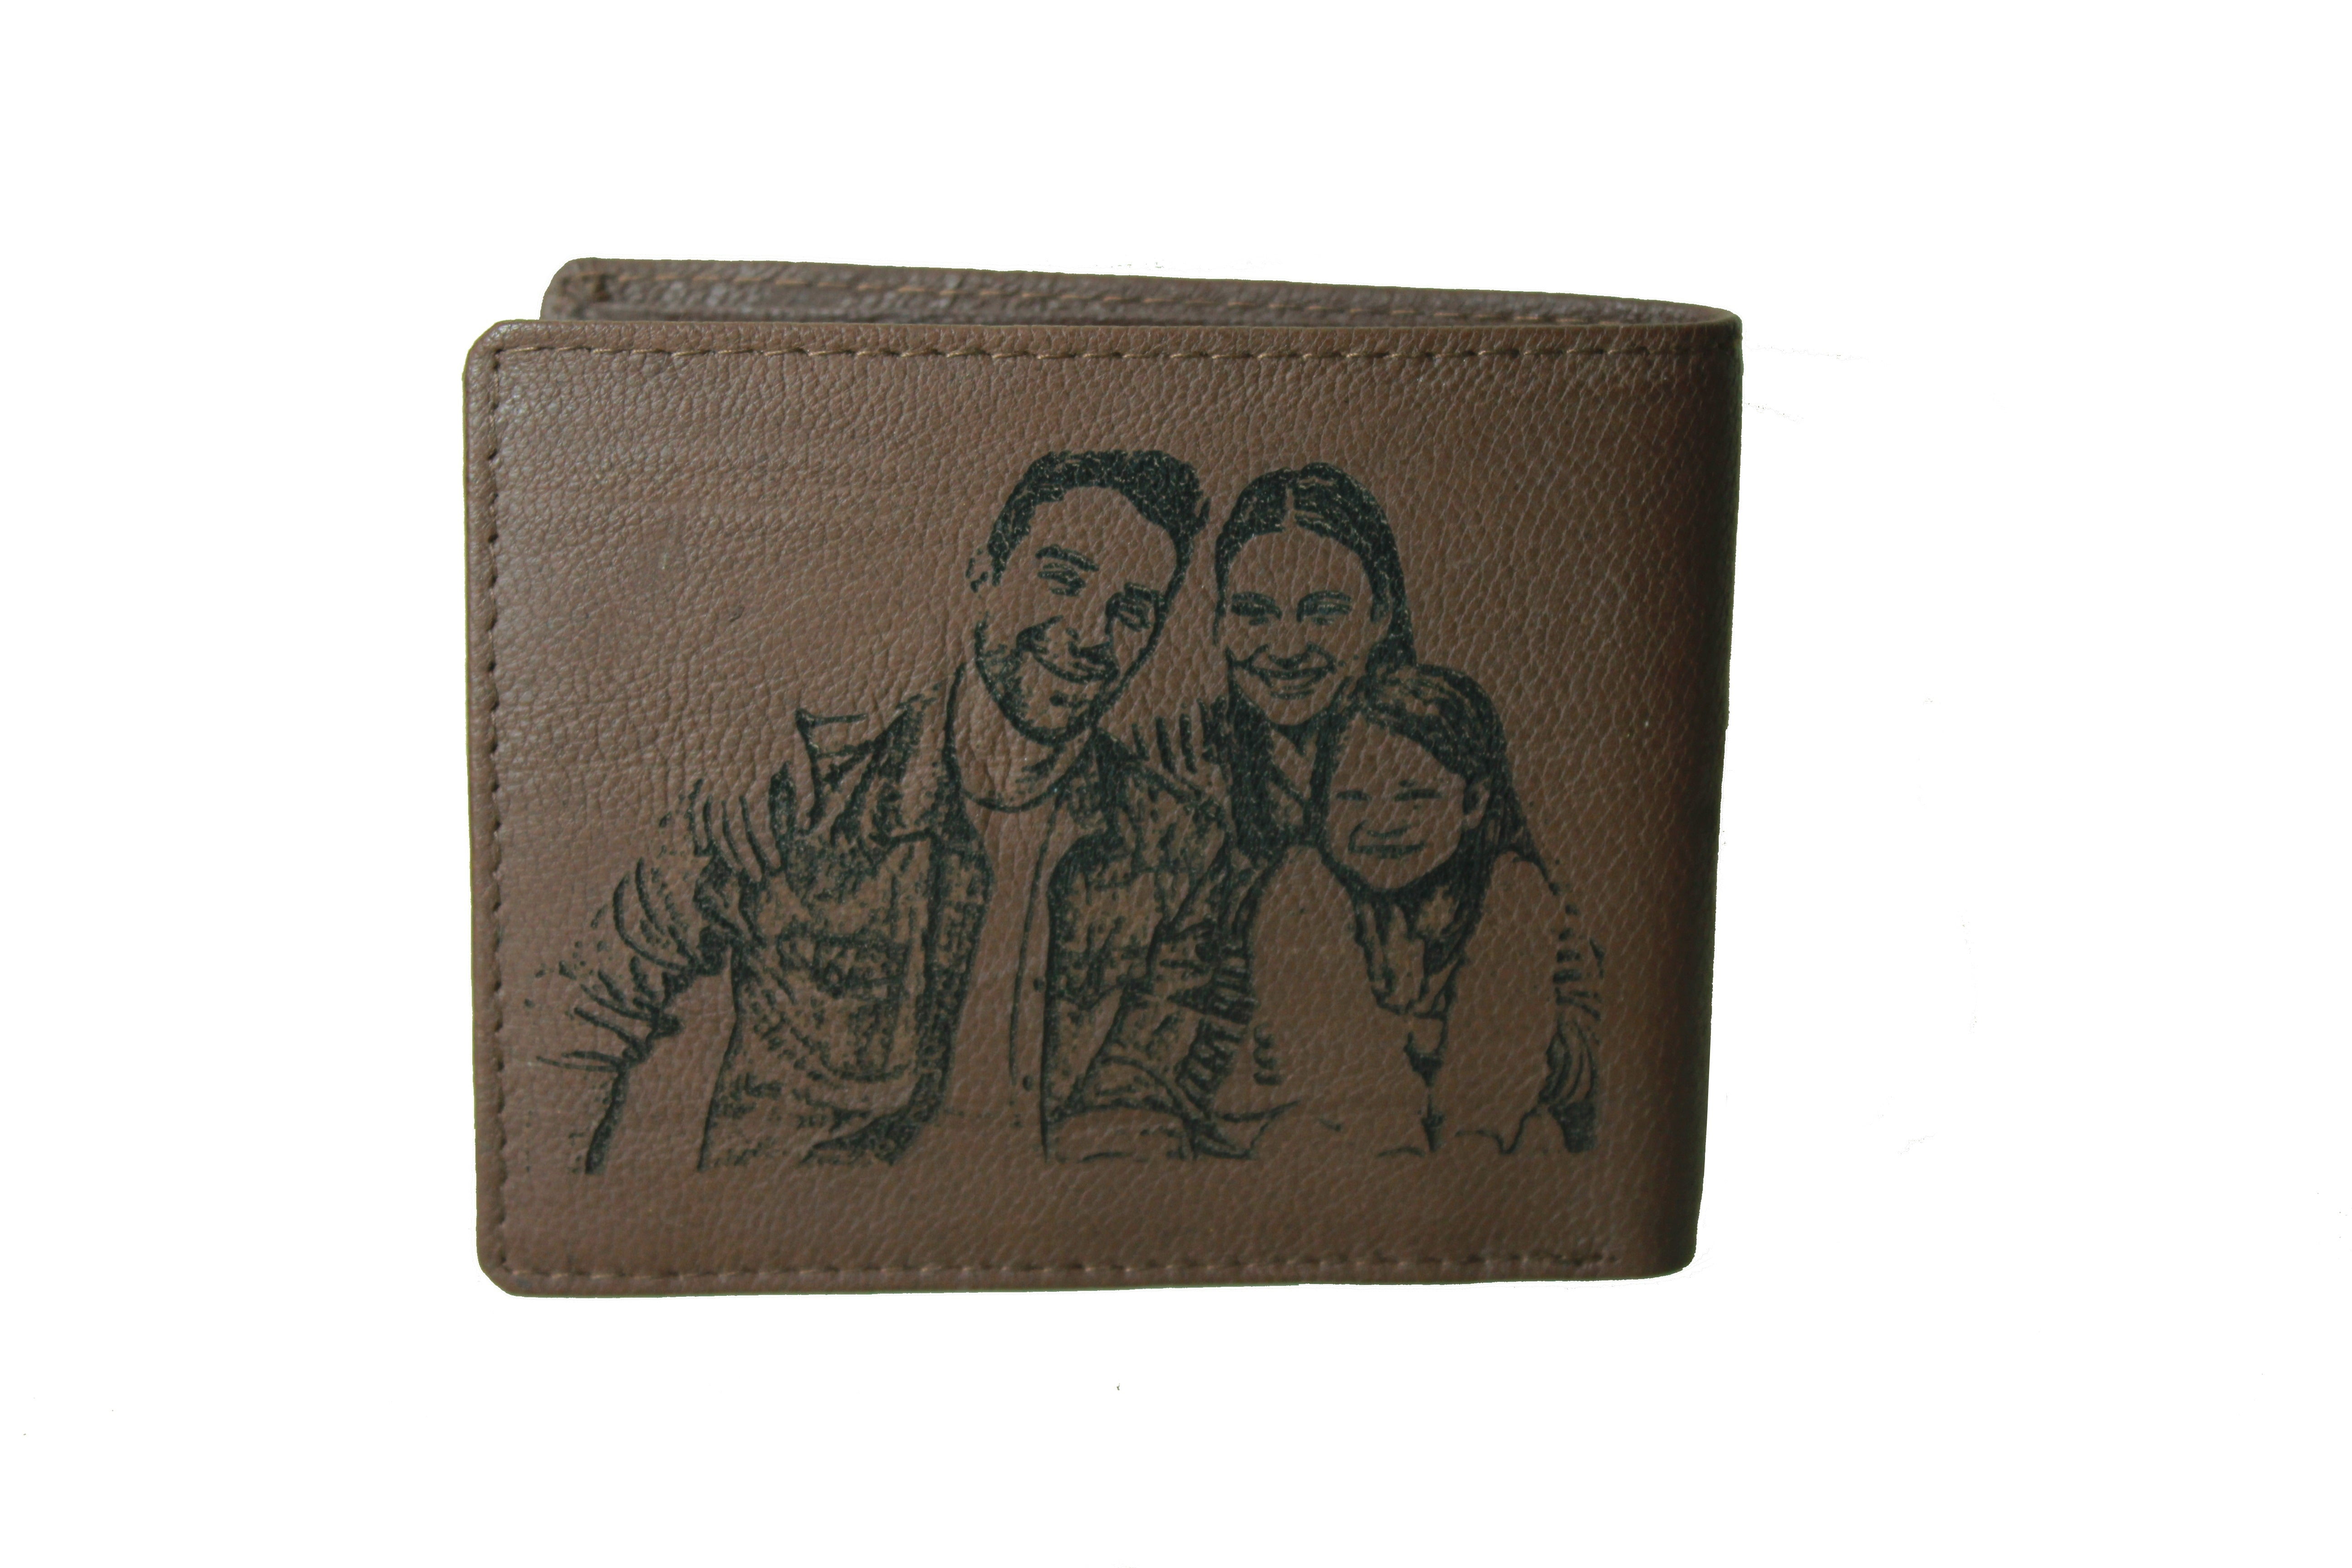 Personalized Brown men's Small Slim Trifold Genuine Leather Wallet Coins Card Bill - picture on wallet